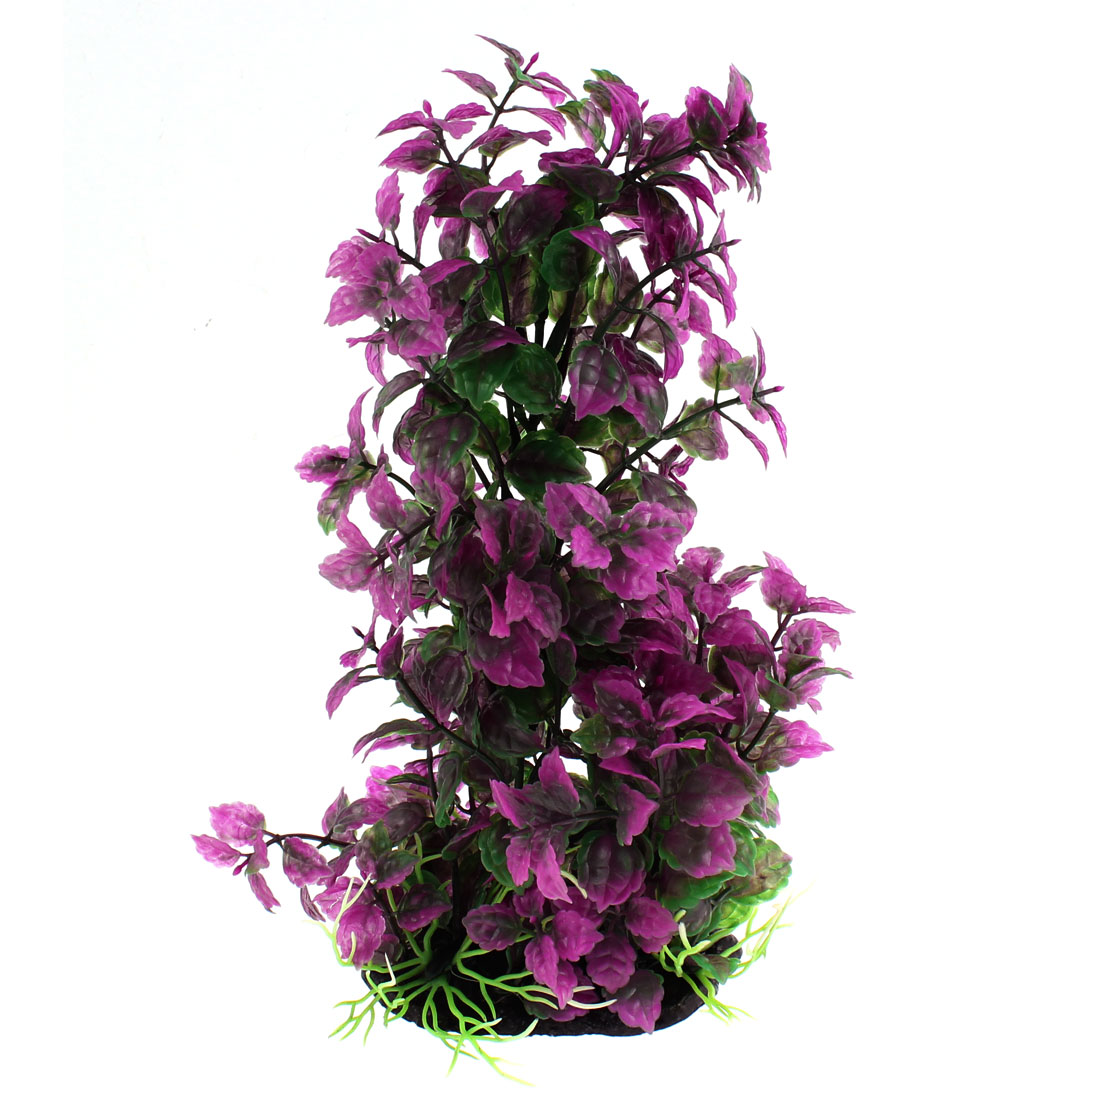 "Aquarium Plastic Manmade Plant Decor Dark Green Purple 9"" High"